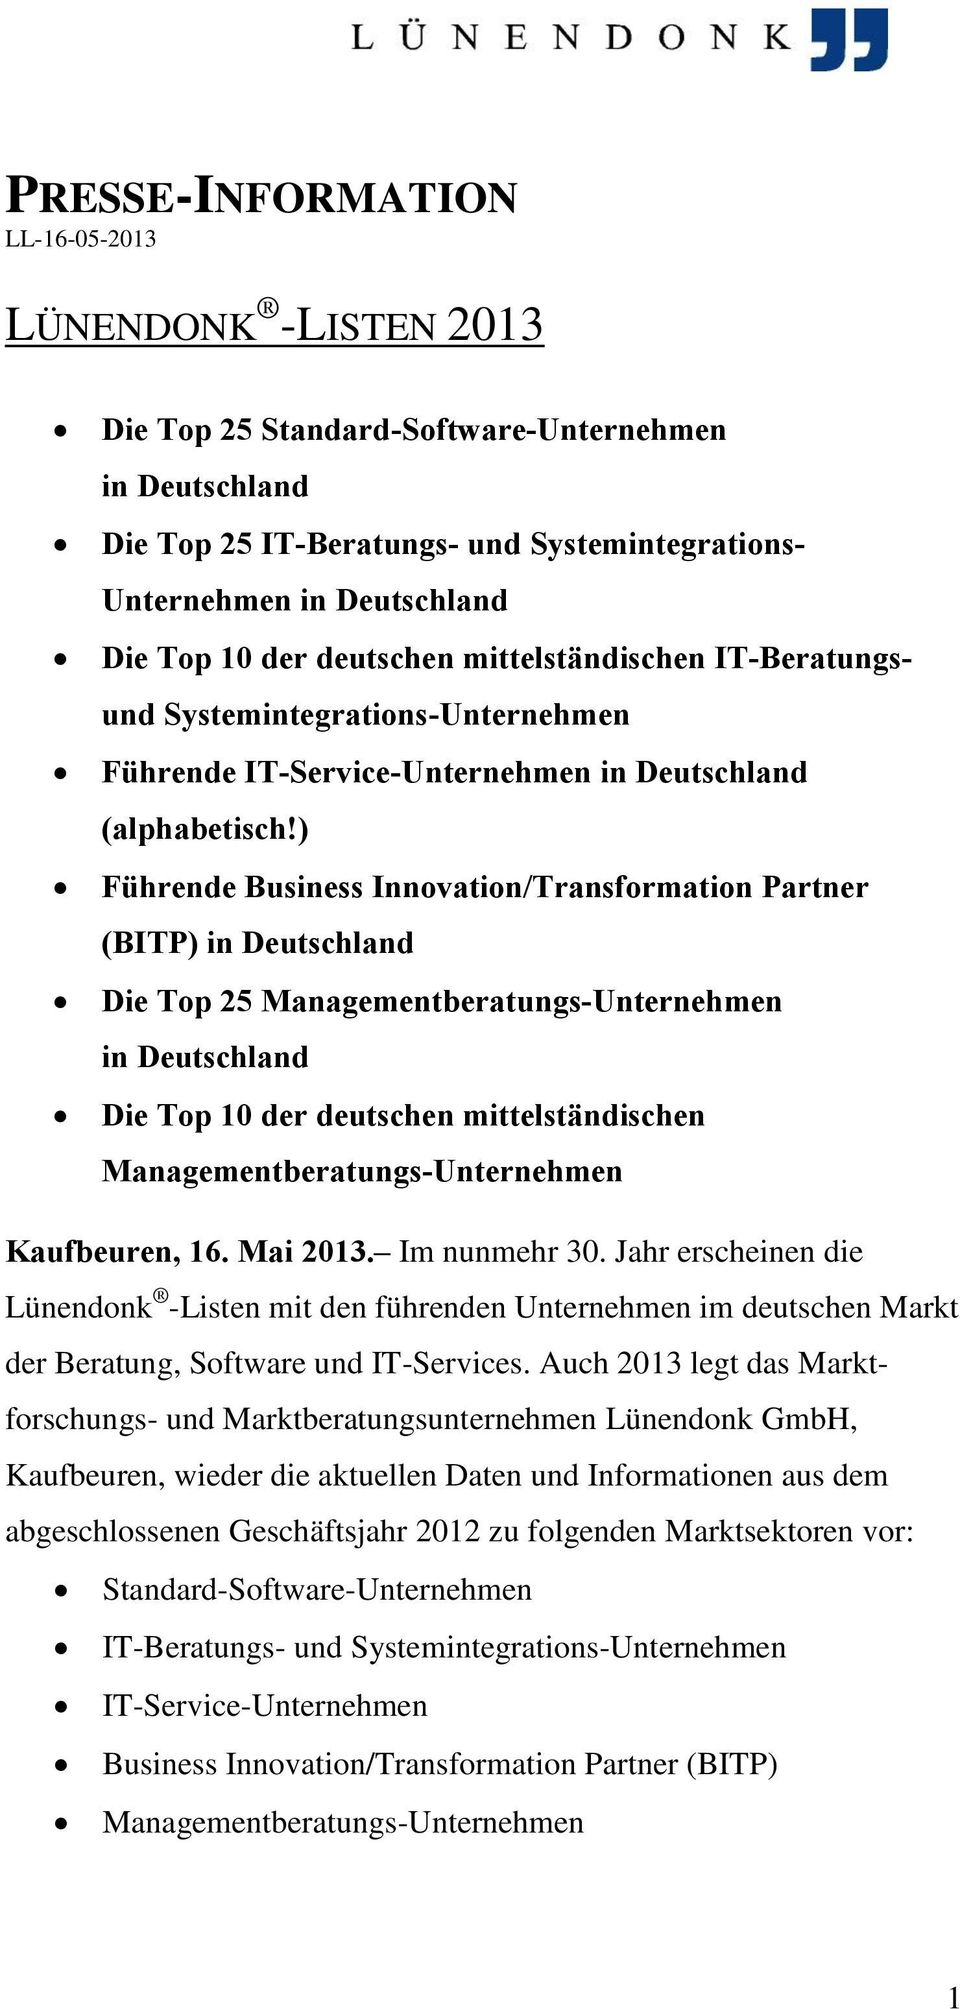 ) Führende Business Innovation/Transformation Partner (BITP) in Deutschland Die Top 25 Managementberatungs-Unternehmen in Deutschland Die Top 10 der deutschen mittelständischen